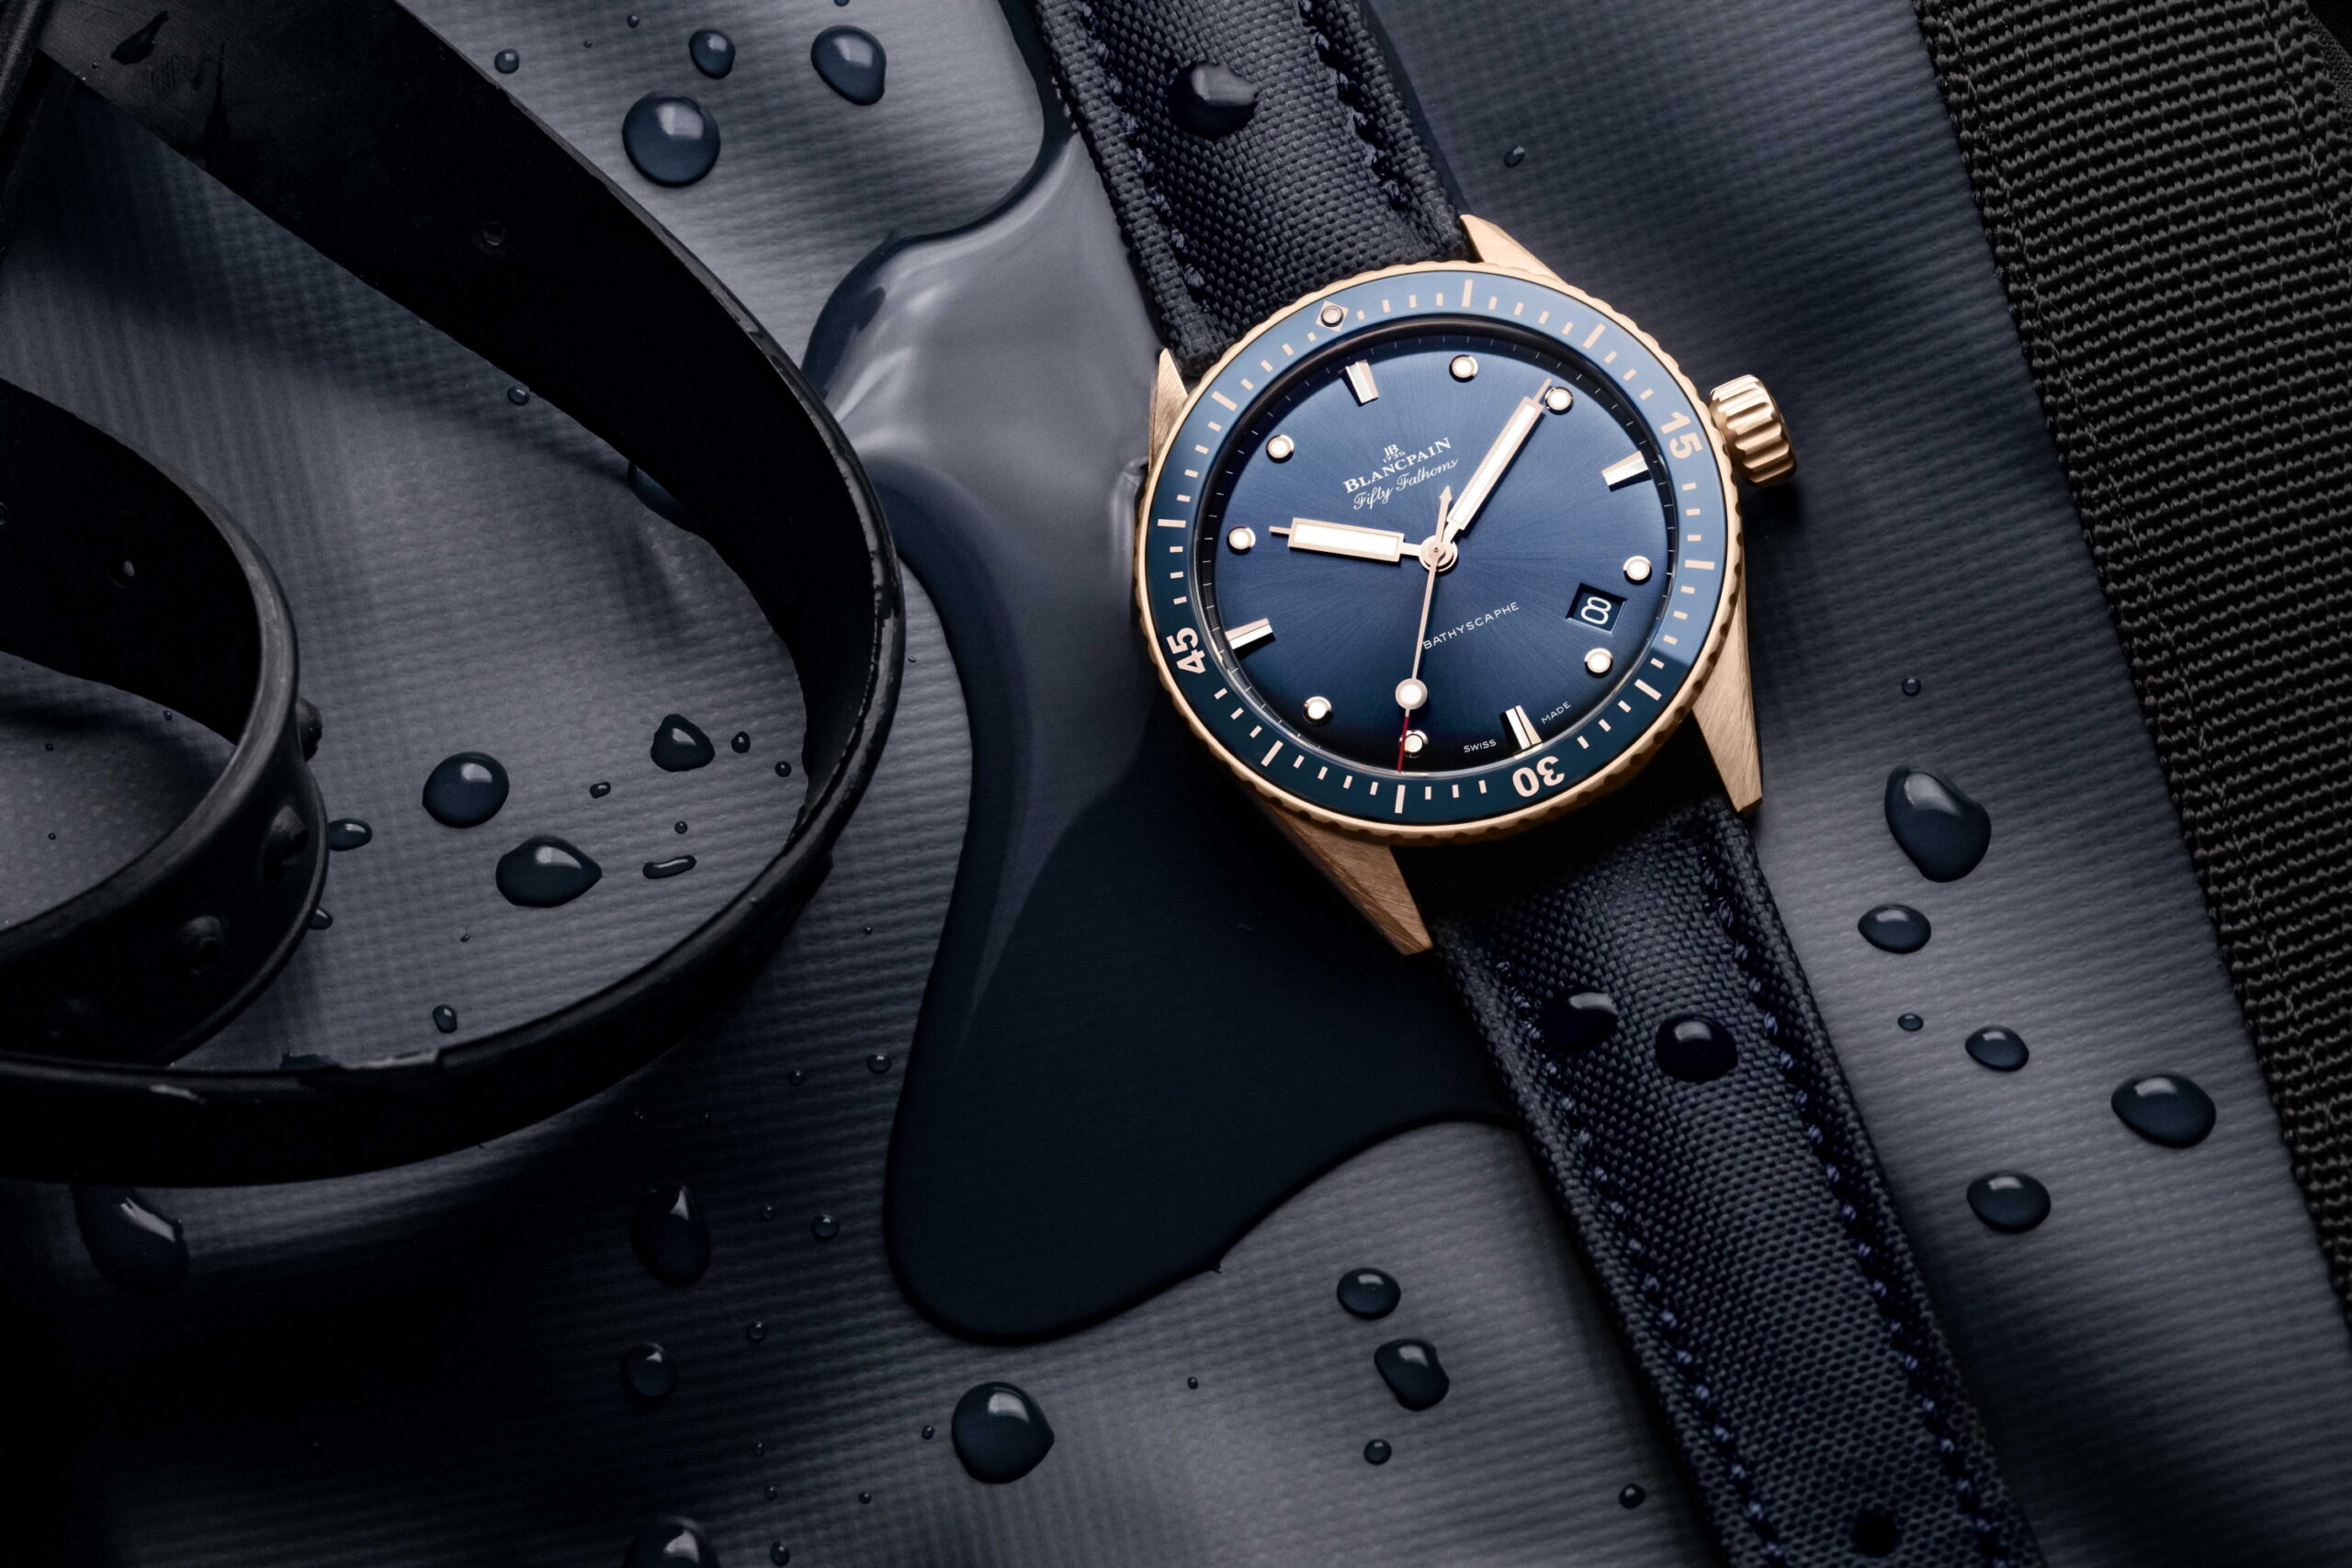 Blancpain Fifty Fathoms Bathyscaphe Sedna Gold